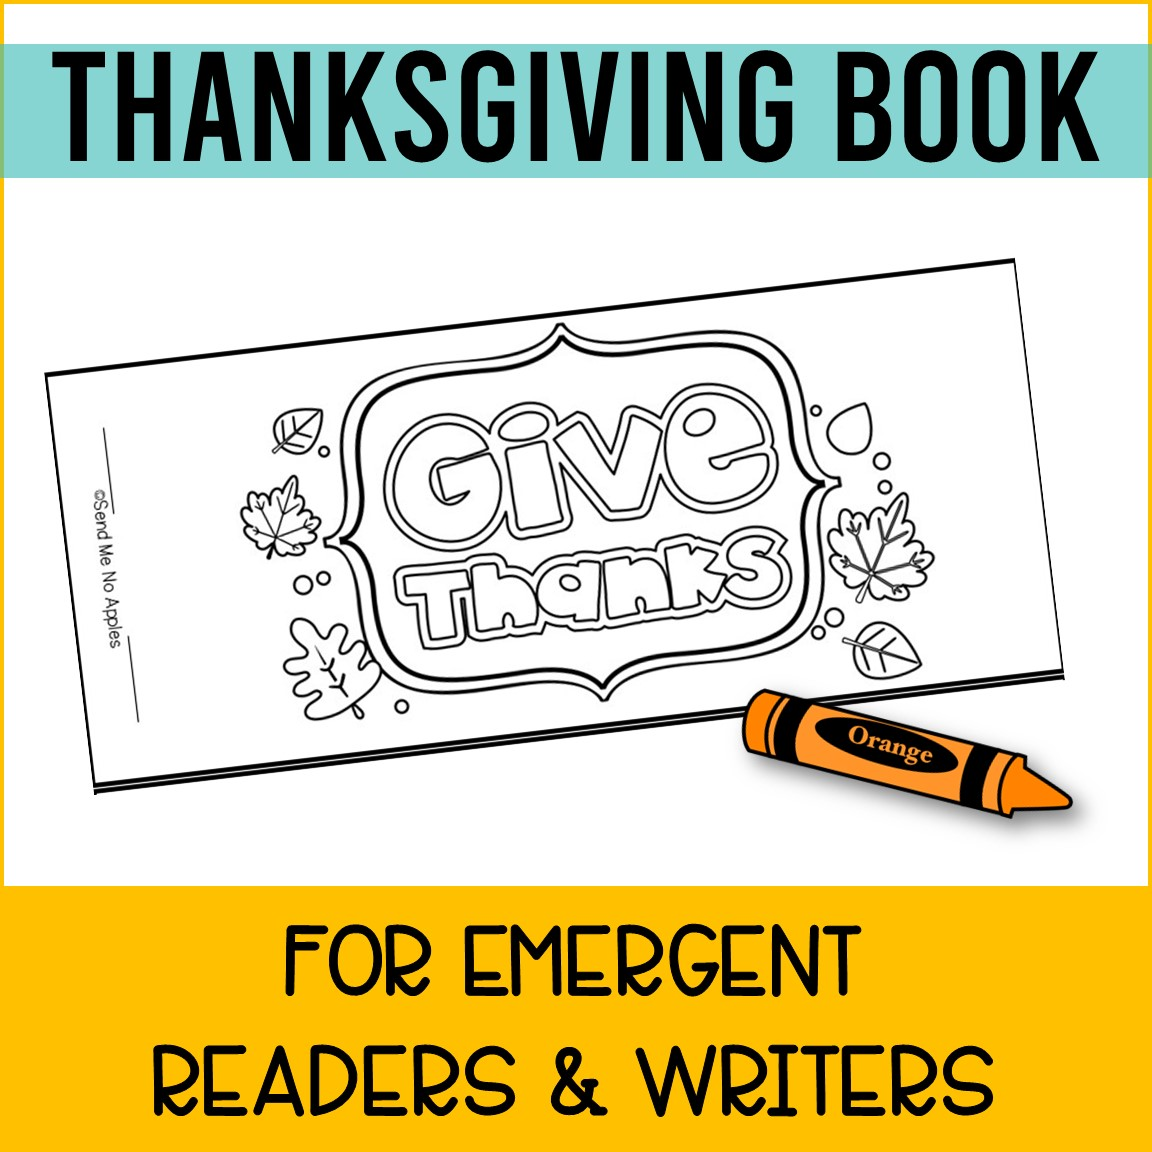 Thanksgiving Mini Book for Emergent Readers with Predictive Text